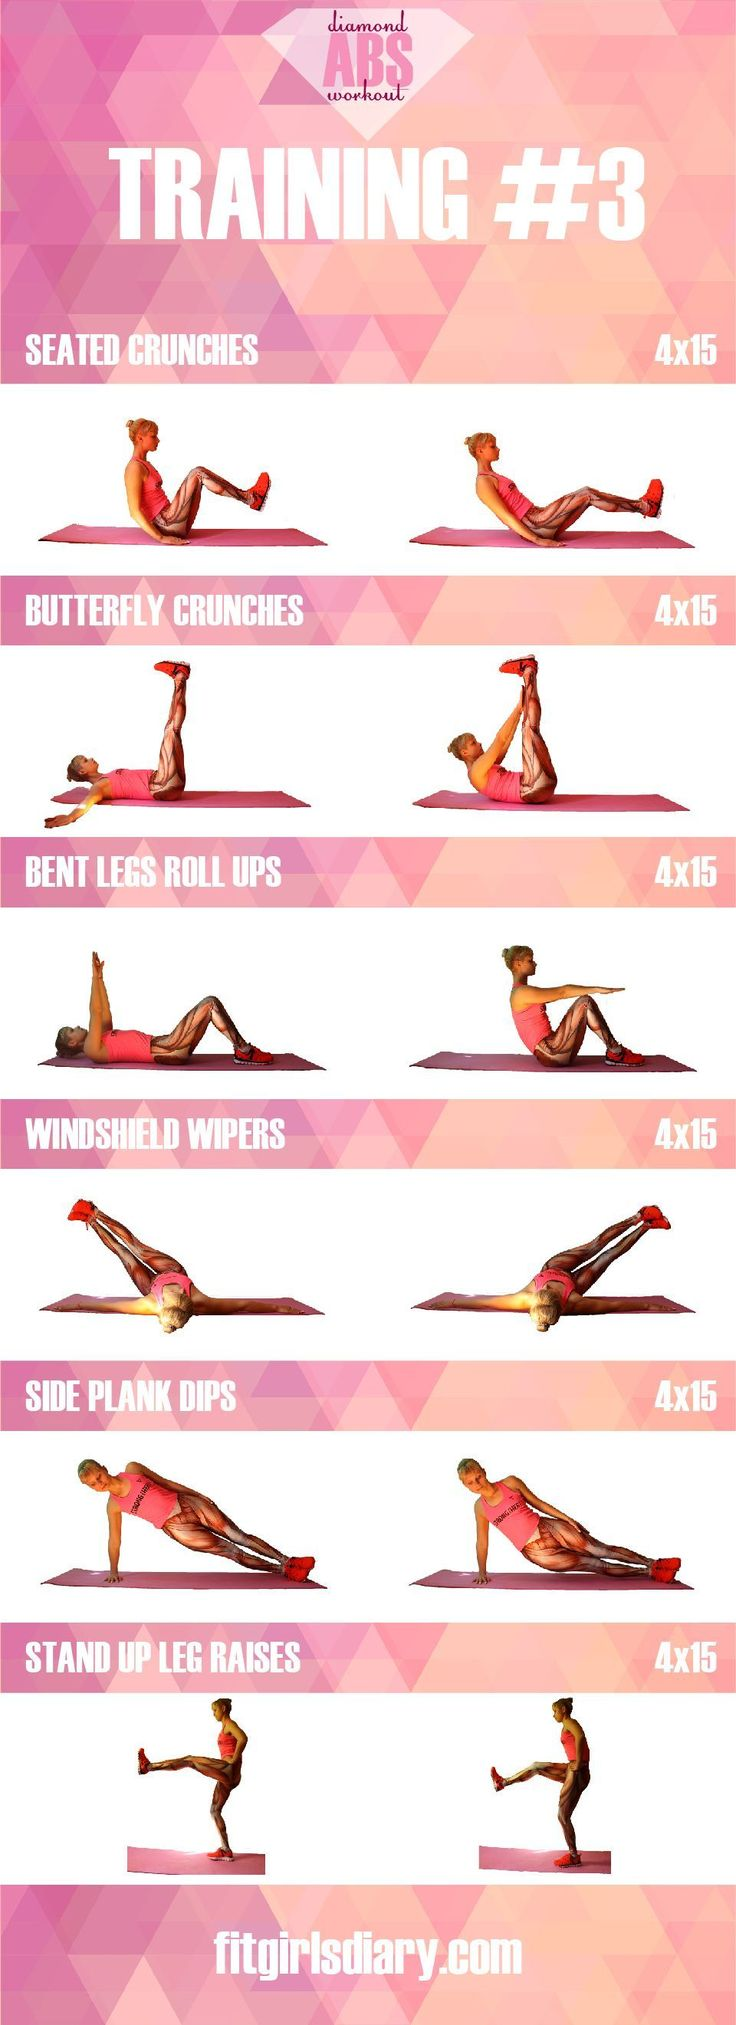 Diamond Abs Workout